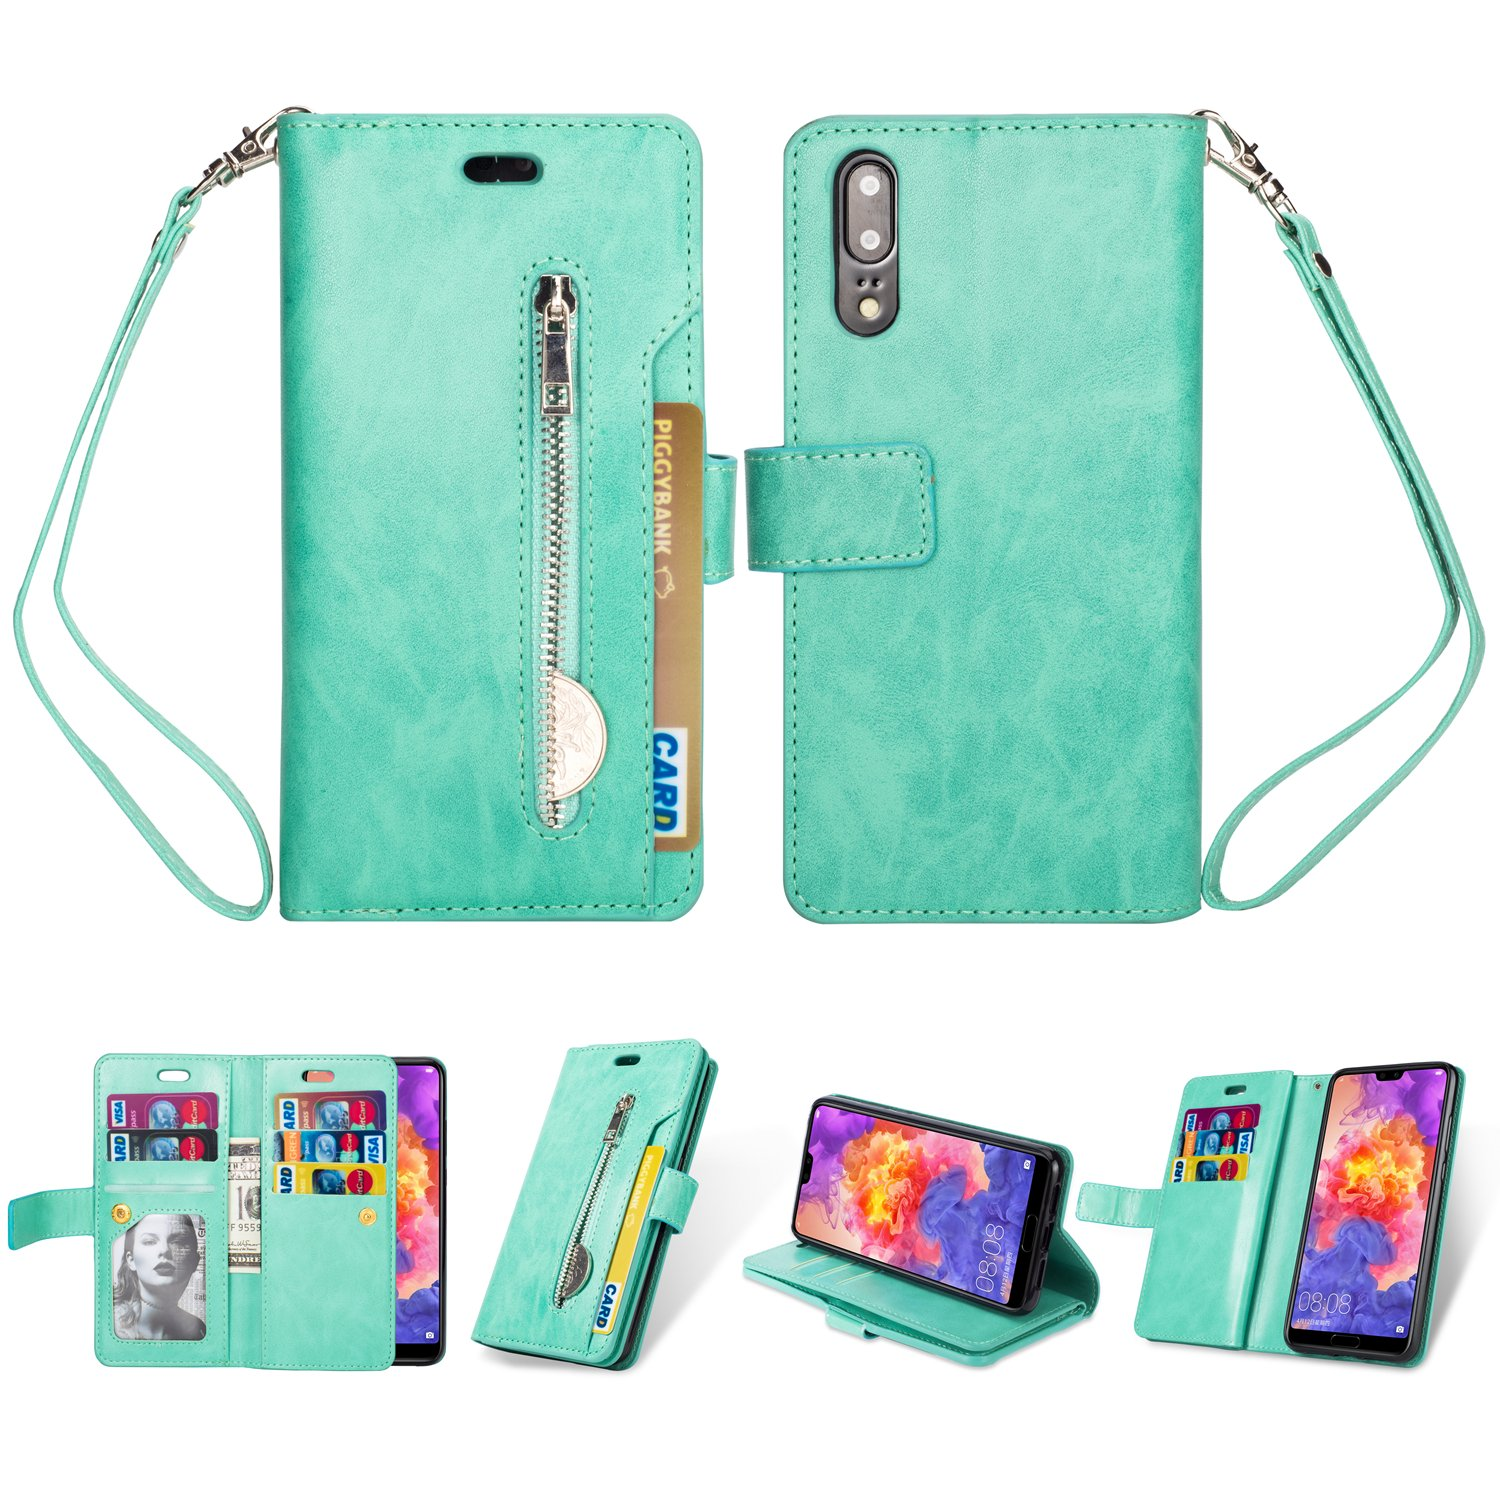 Gostyle Huawei P20 Lite Flip Wallet Case Blue with 9 Credit Card Holders Slots, Premium Leather Magnetic Stand Cover with Zipper Pocket and Hand Strap for Huawei P20 Lite